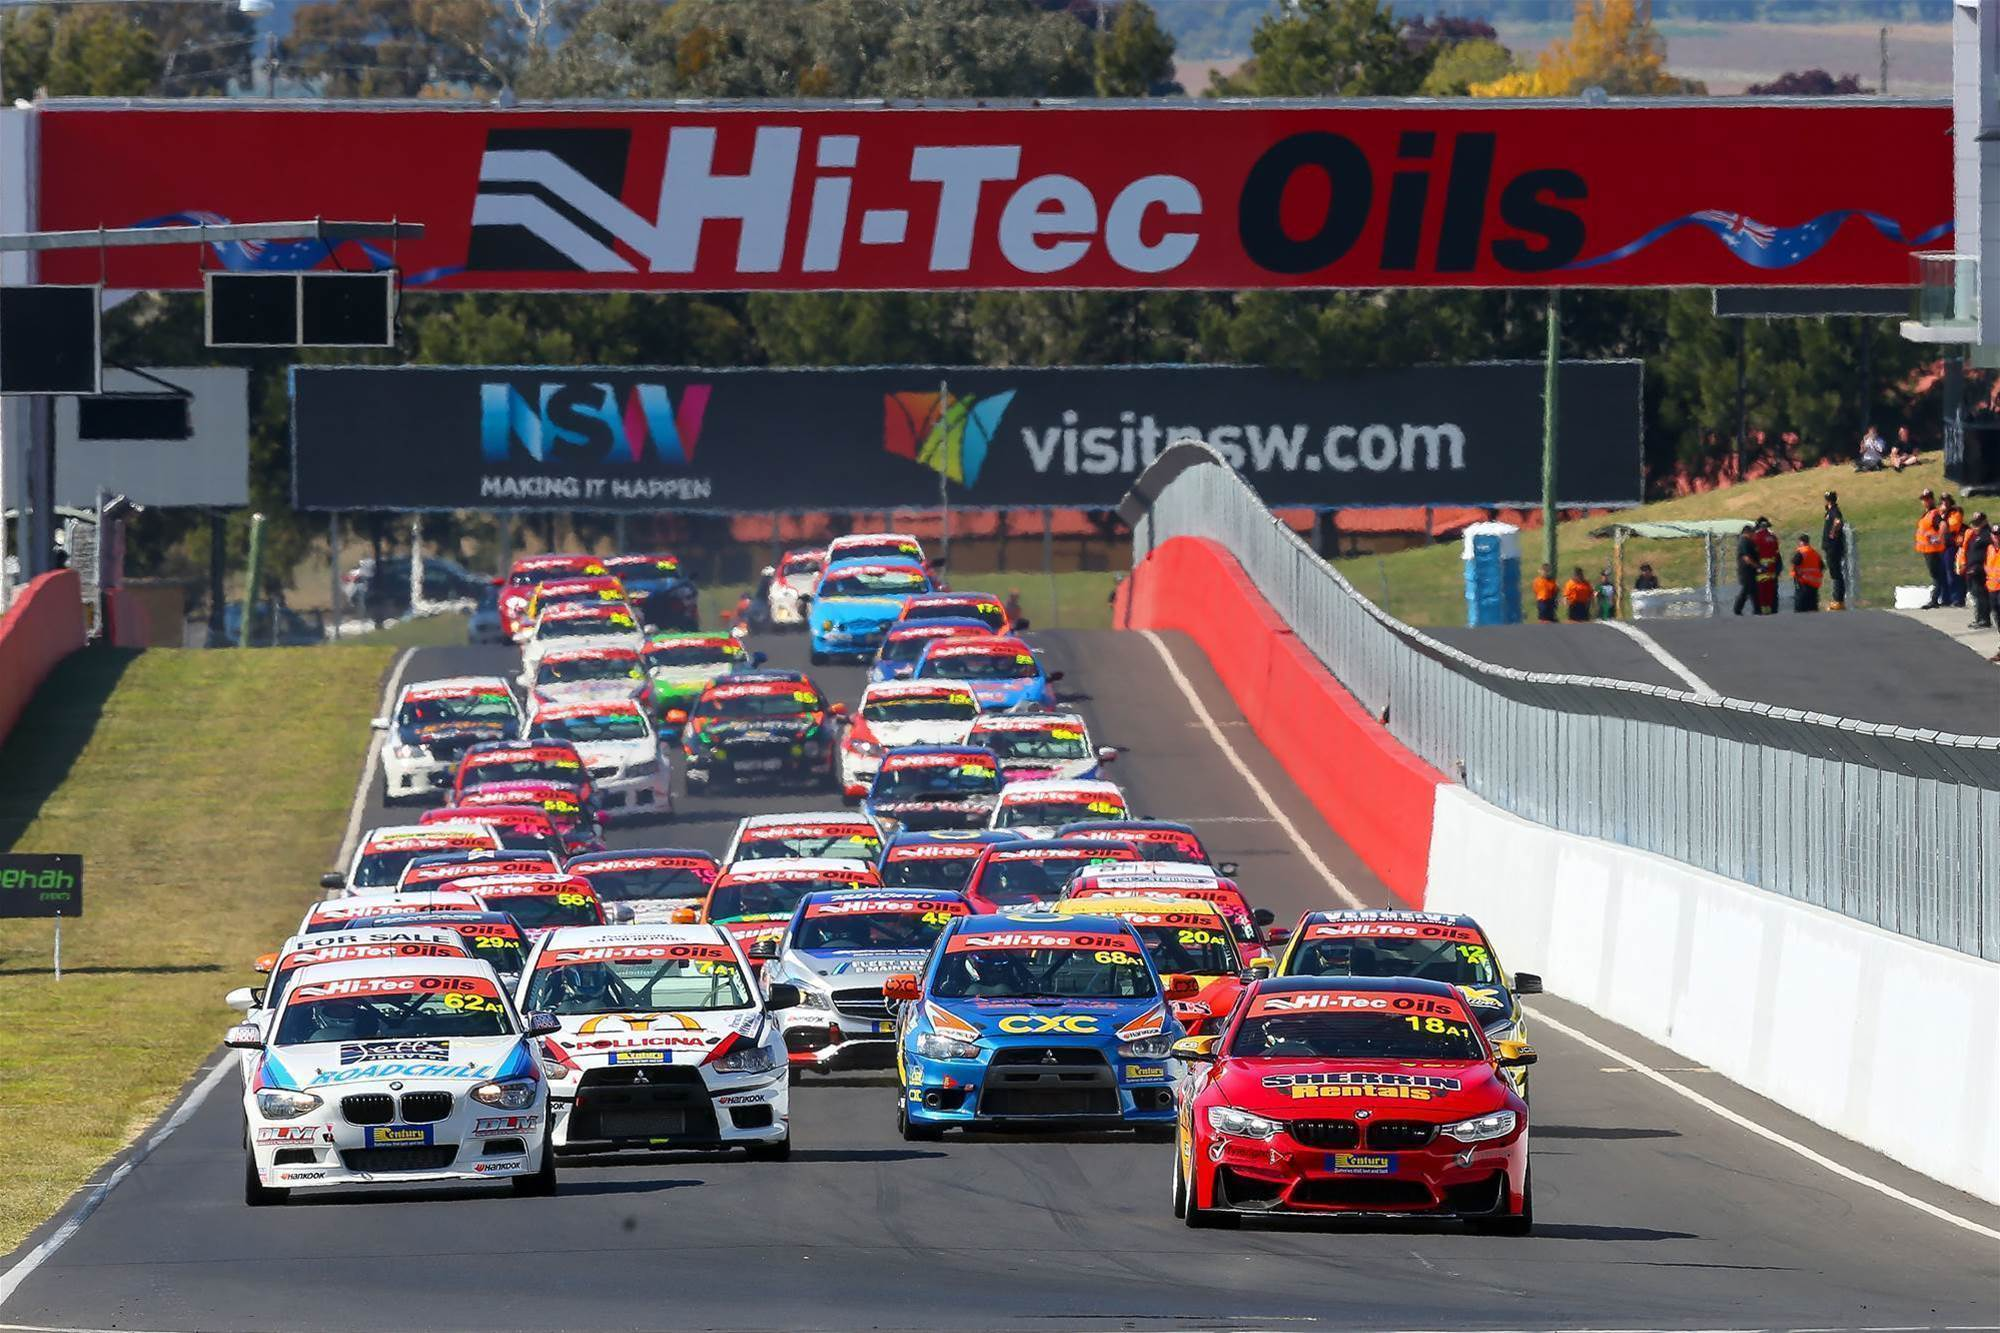 Bumper entry expected for Bathurst 6 Hour